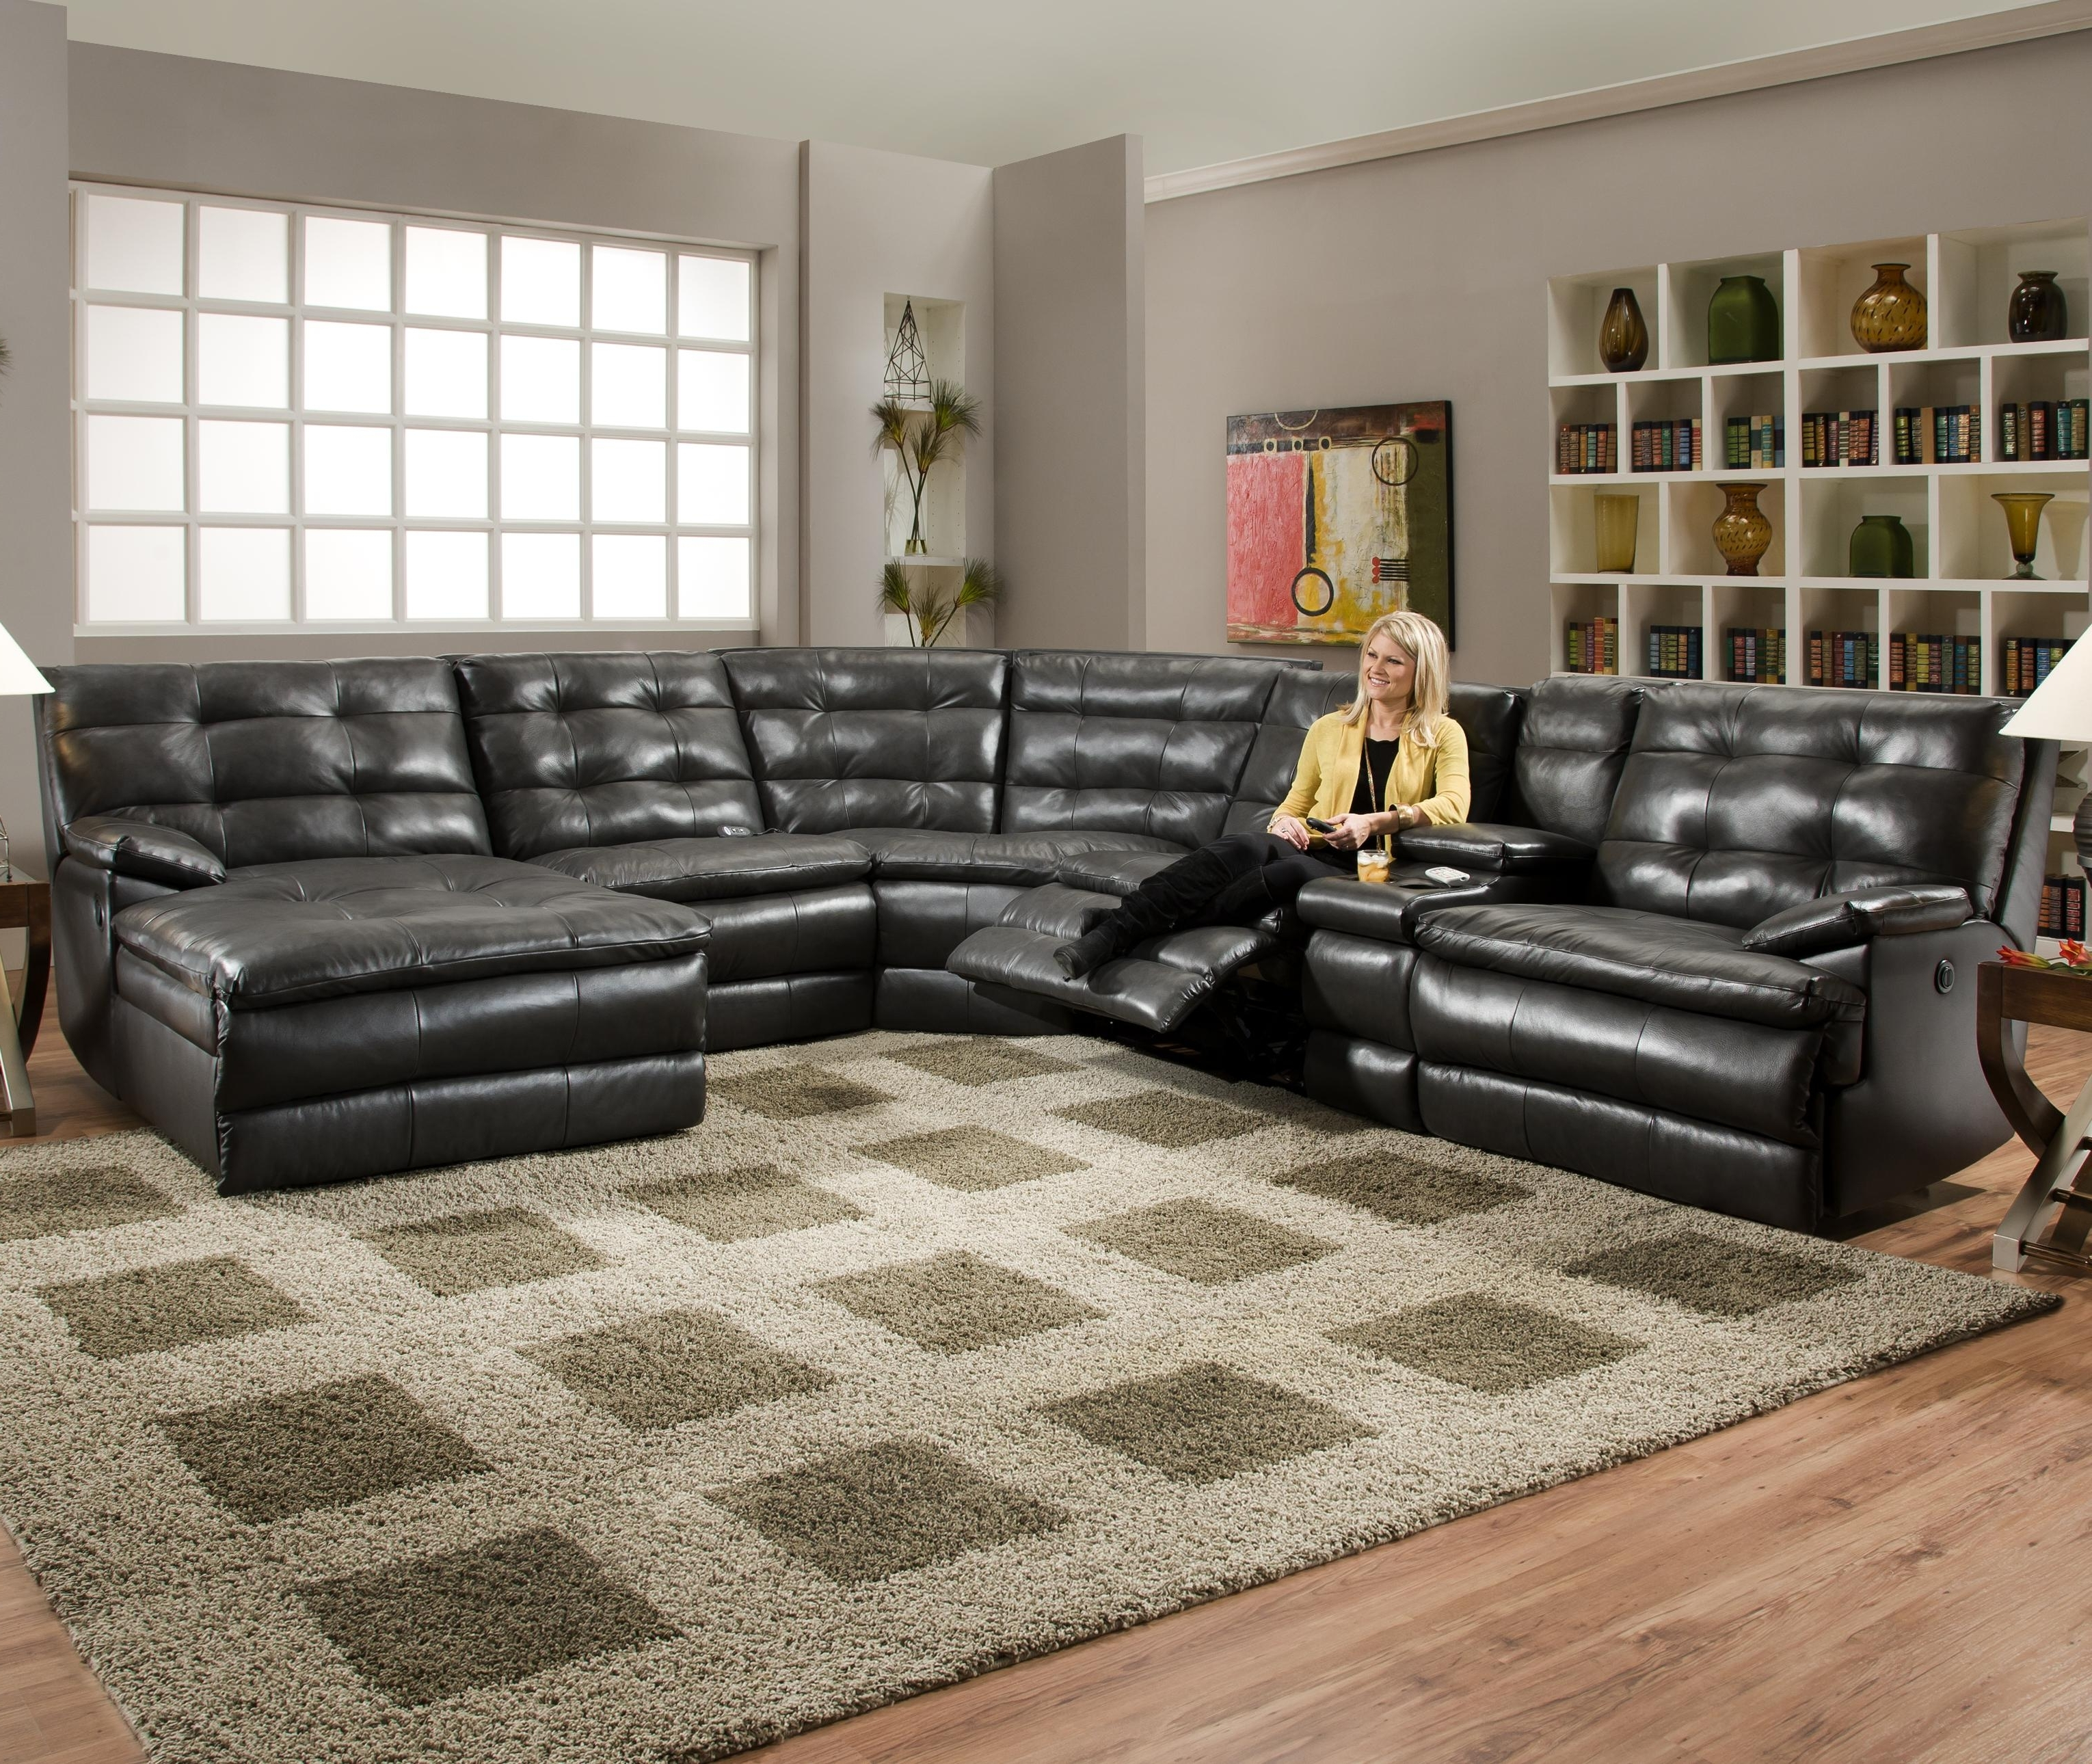 Most Recently Released Deep U Shaped Sectionals Throughout Most Comfortable Sofa Reviews Oversized Deep Couch U Shaped Sofa (View 9 of 15)